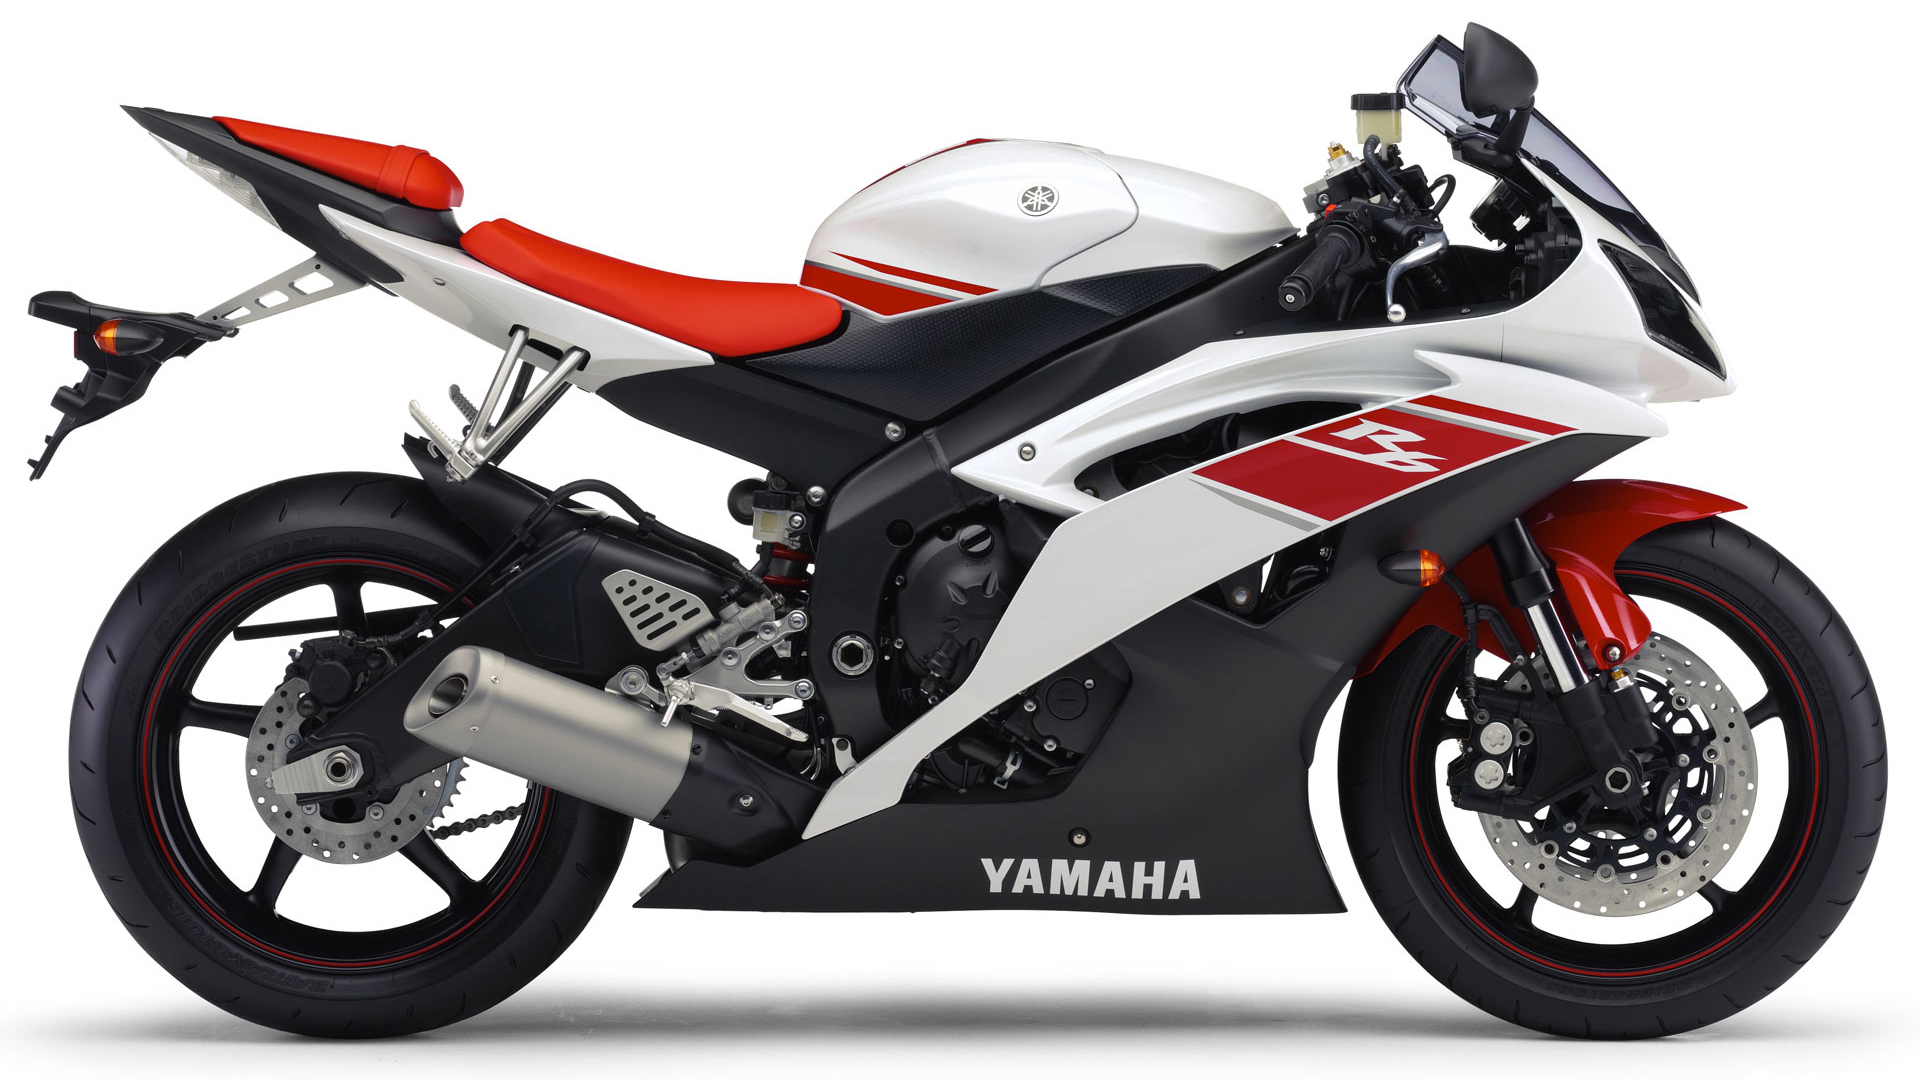 Yamaha R6 Bike 409.91 Kb